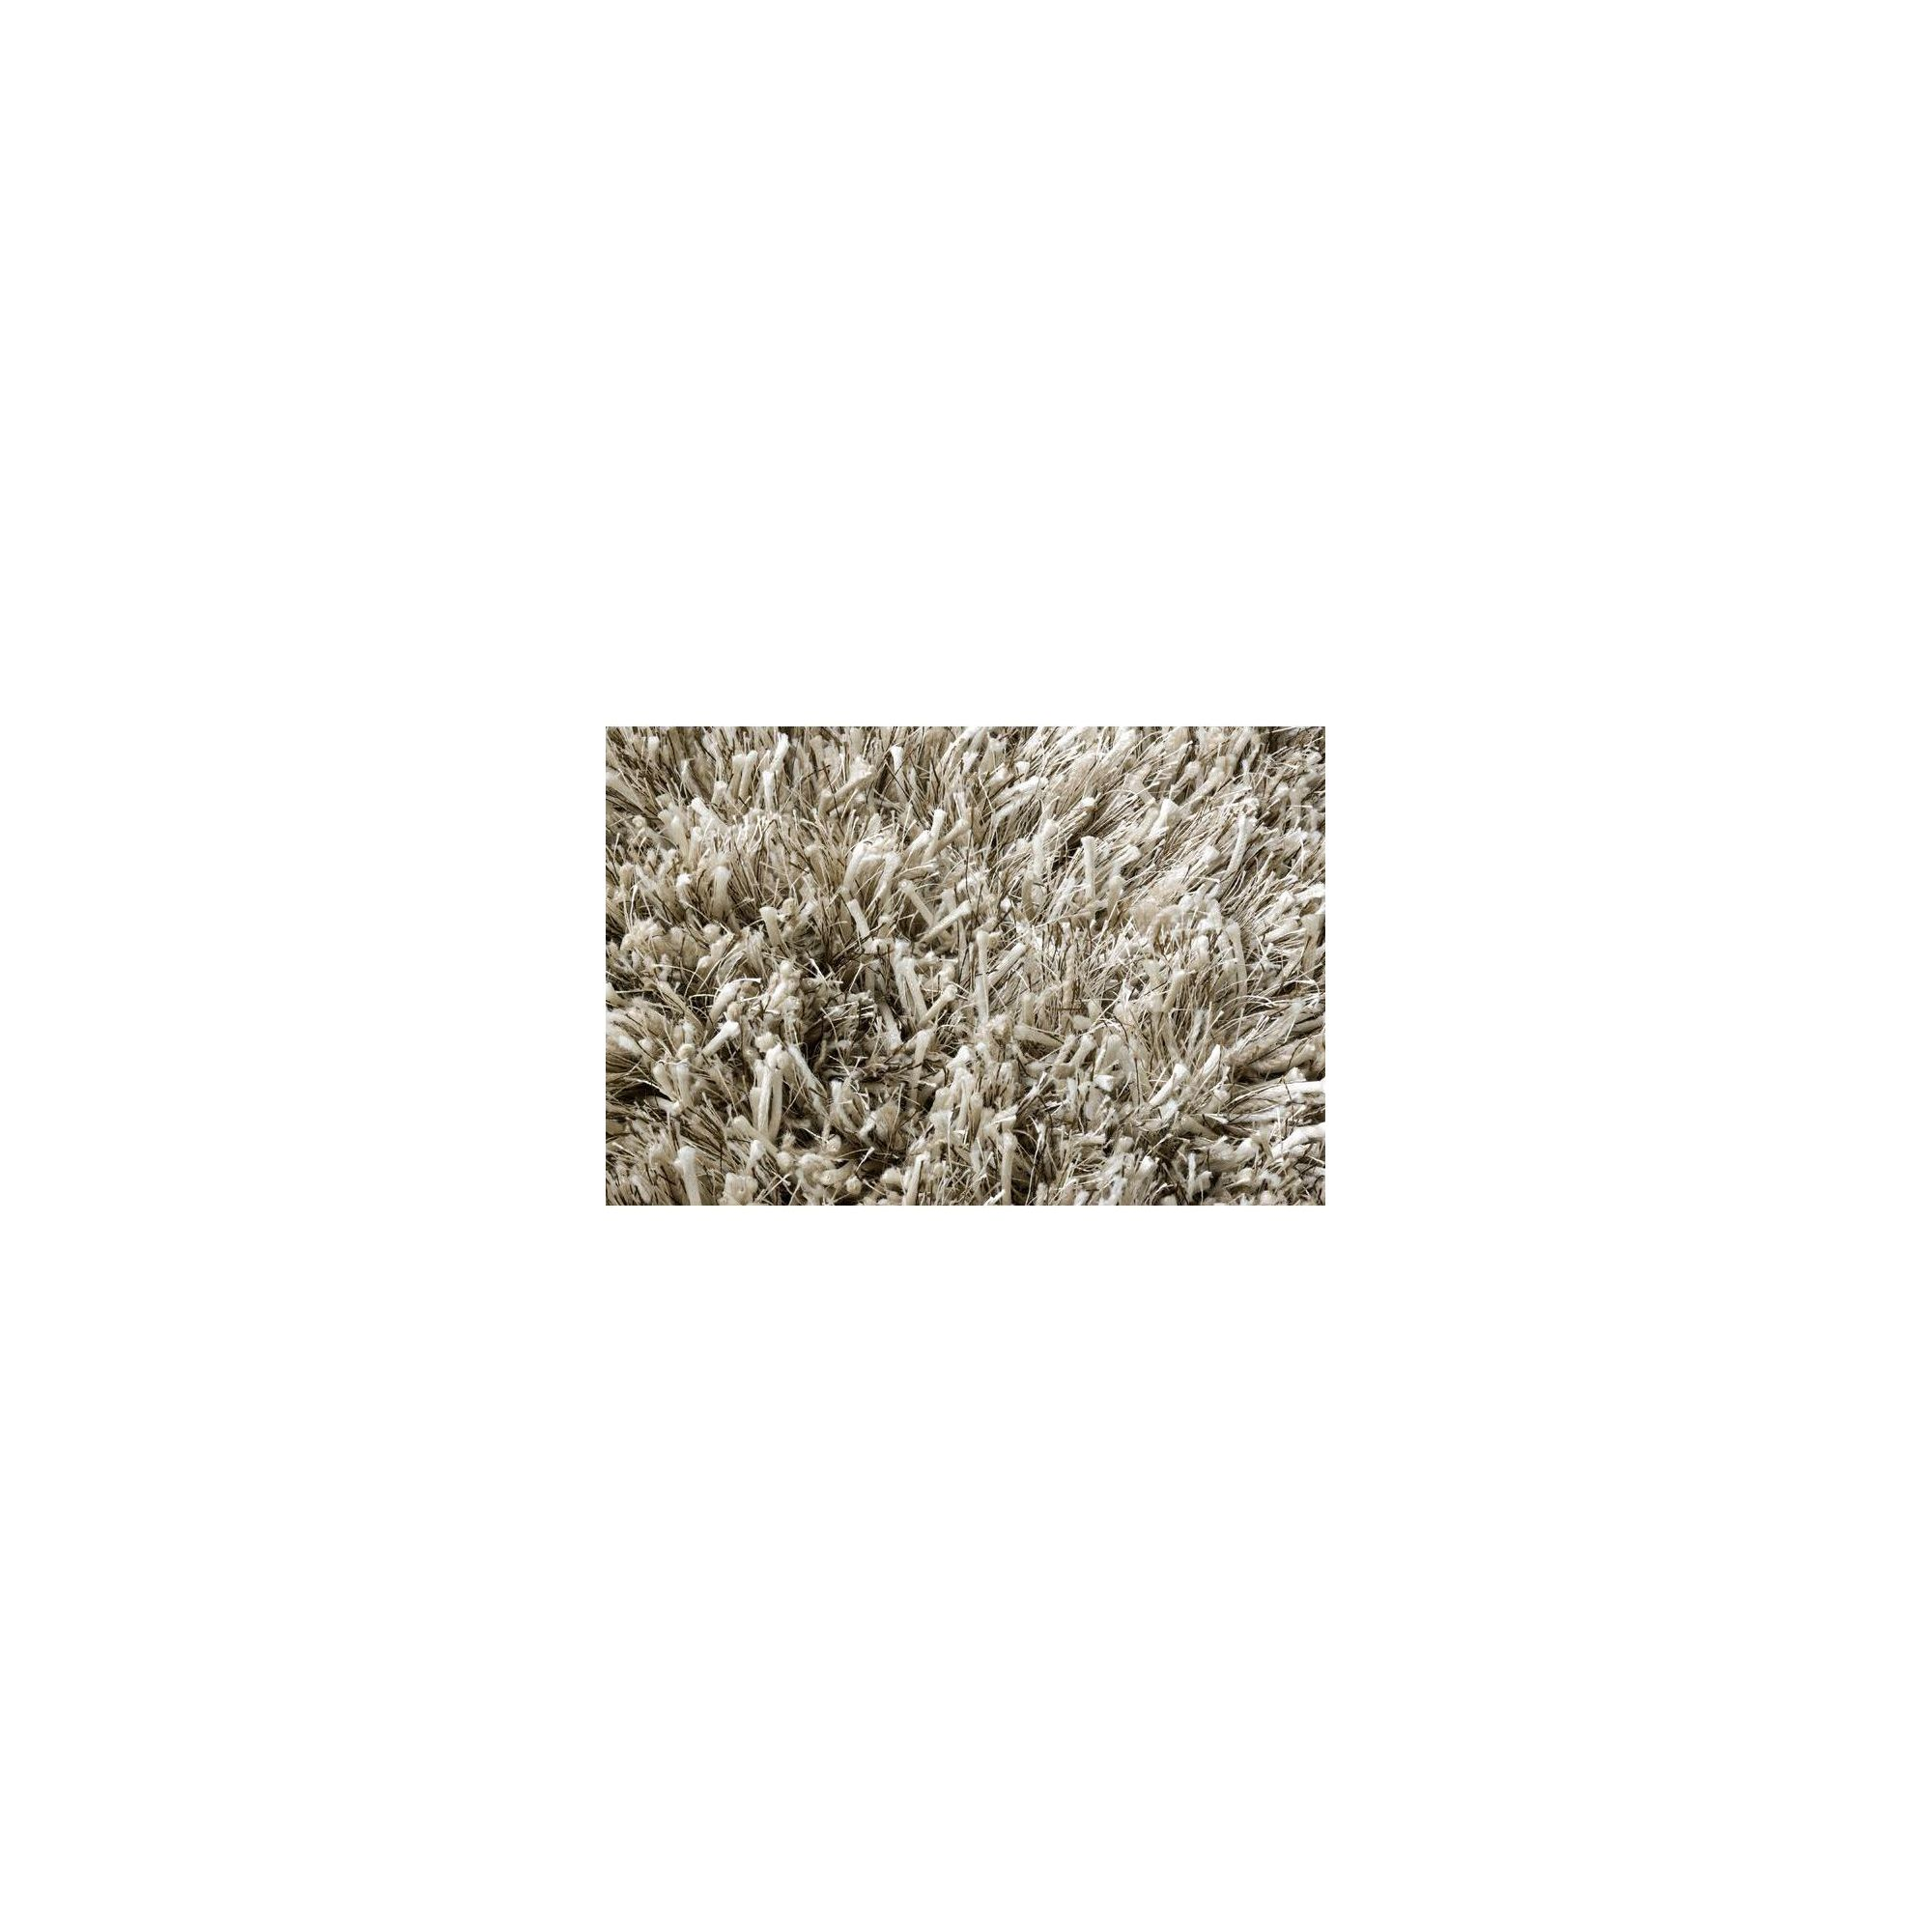 Linie Design Ronado Sand Shag Rug - 300cm x 200cm at Tesco Direct